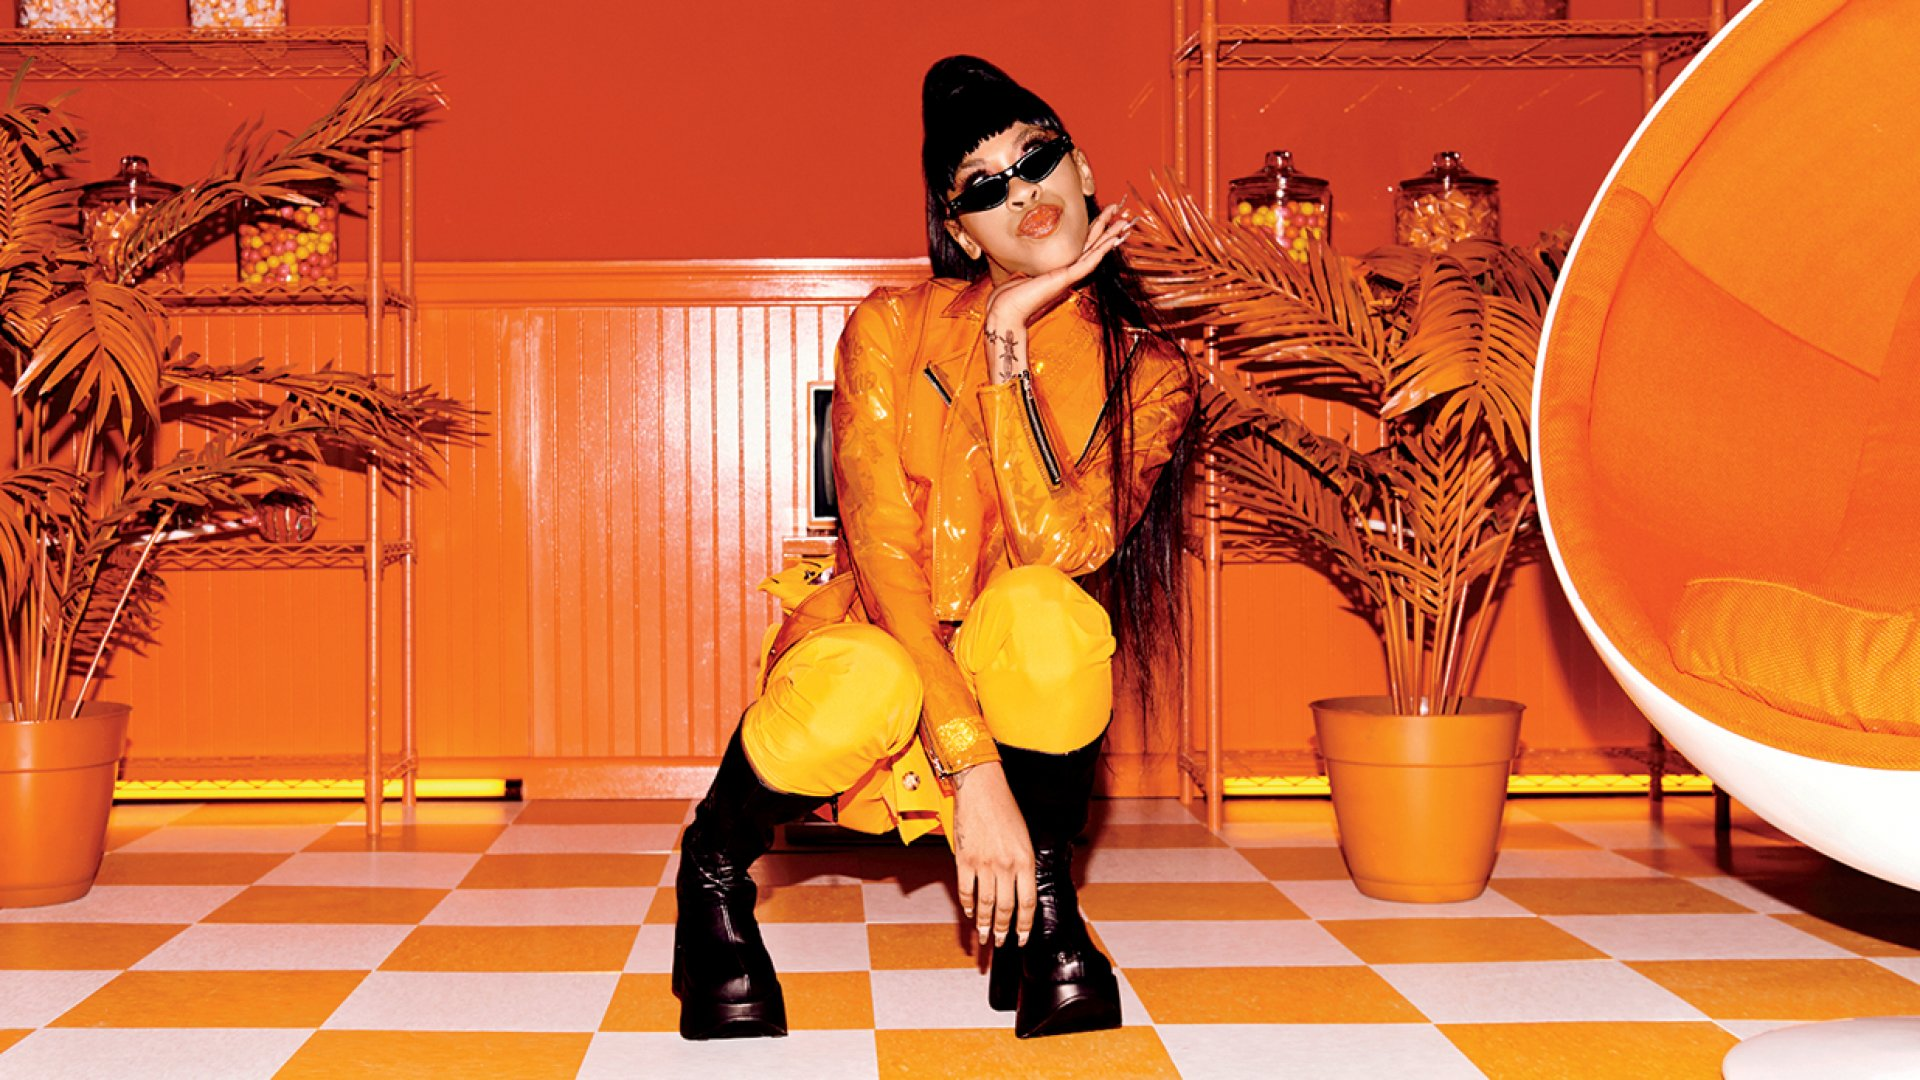 Rapper Rico Nasty channeling one of Skullcandy's 12 Moods lines, the tangerine-colored Bold. She qualifies.